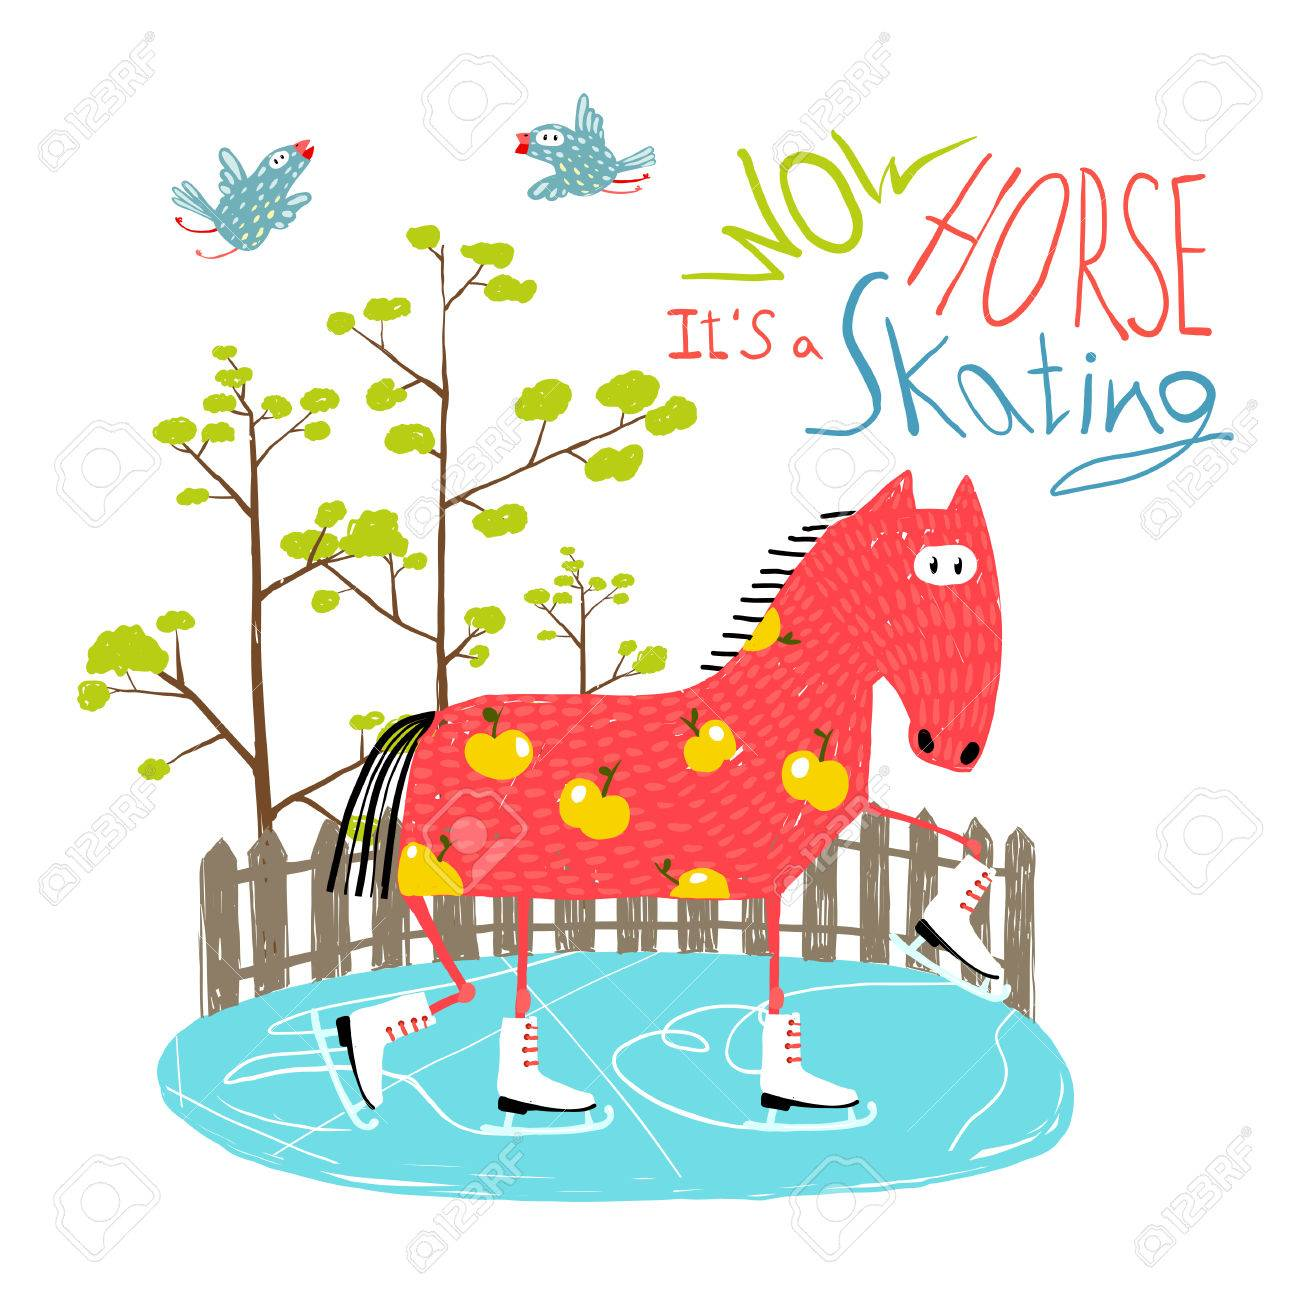 Colorful Fun Cartoon Ice Skating Horse for Kids - 40344740